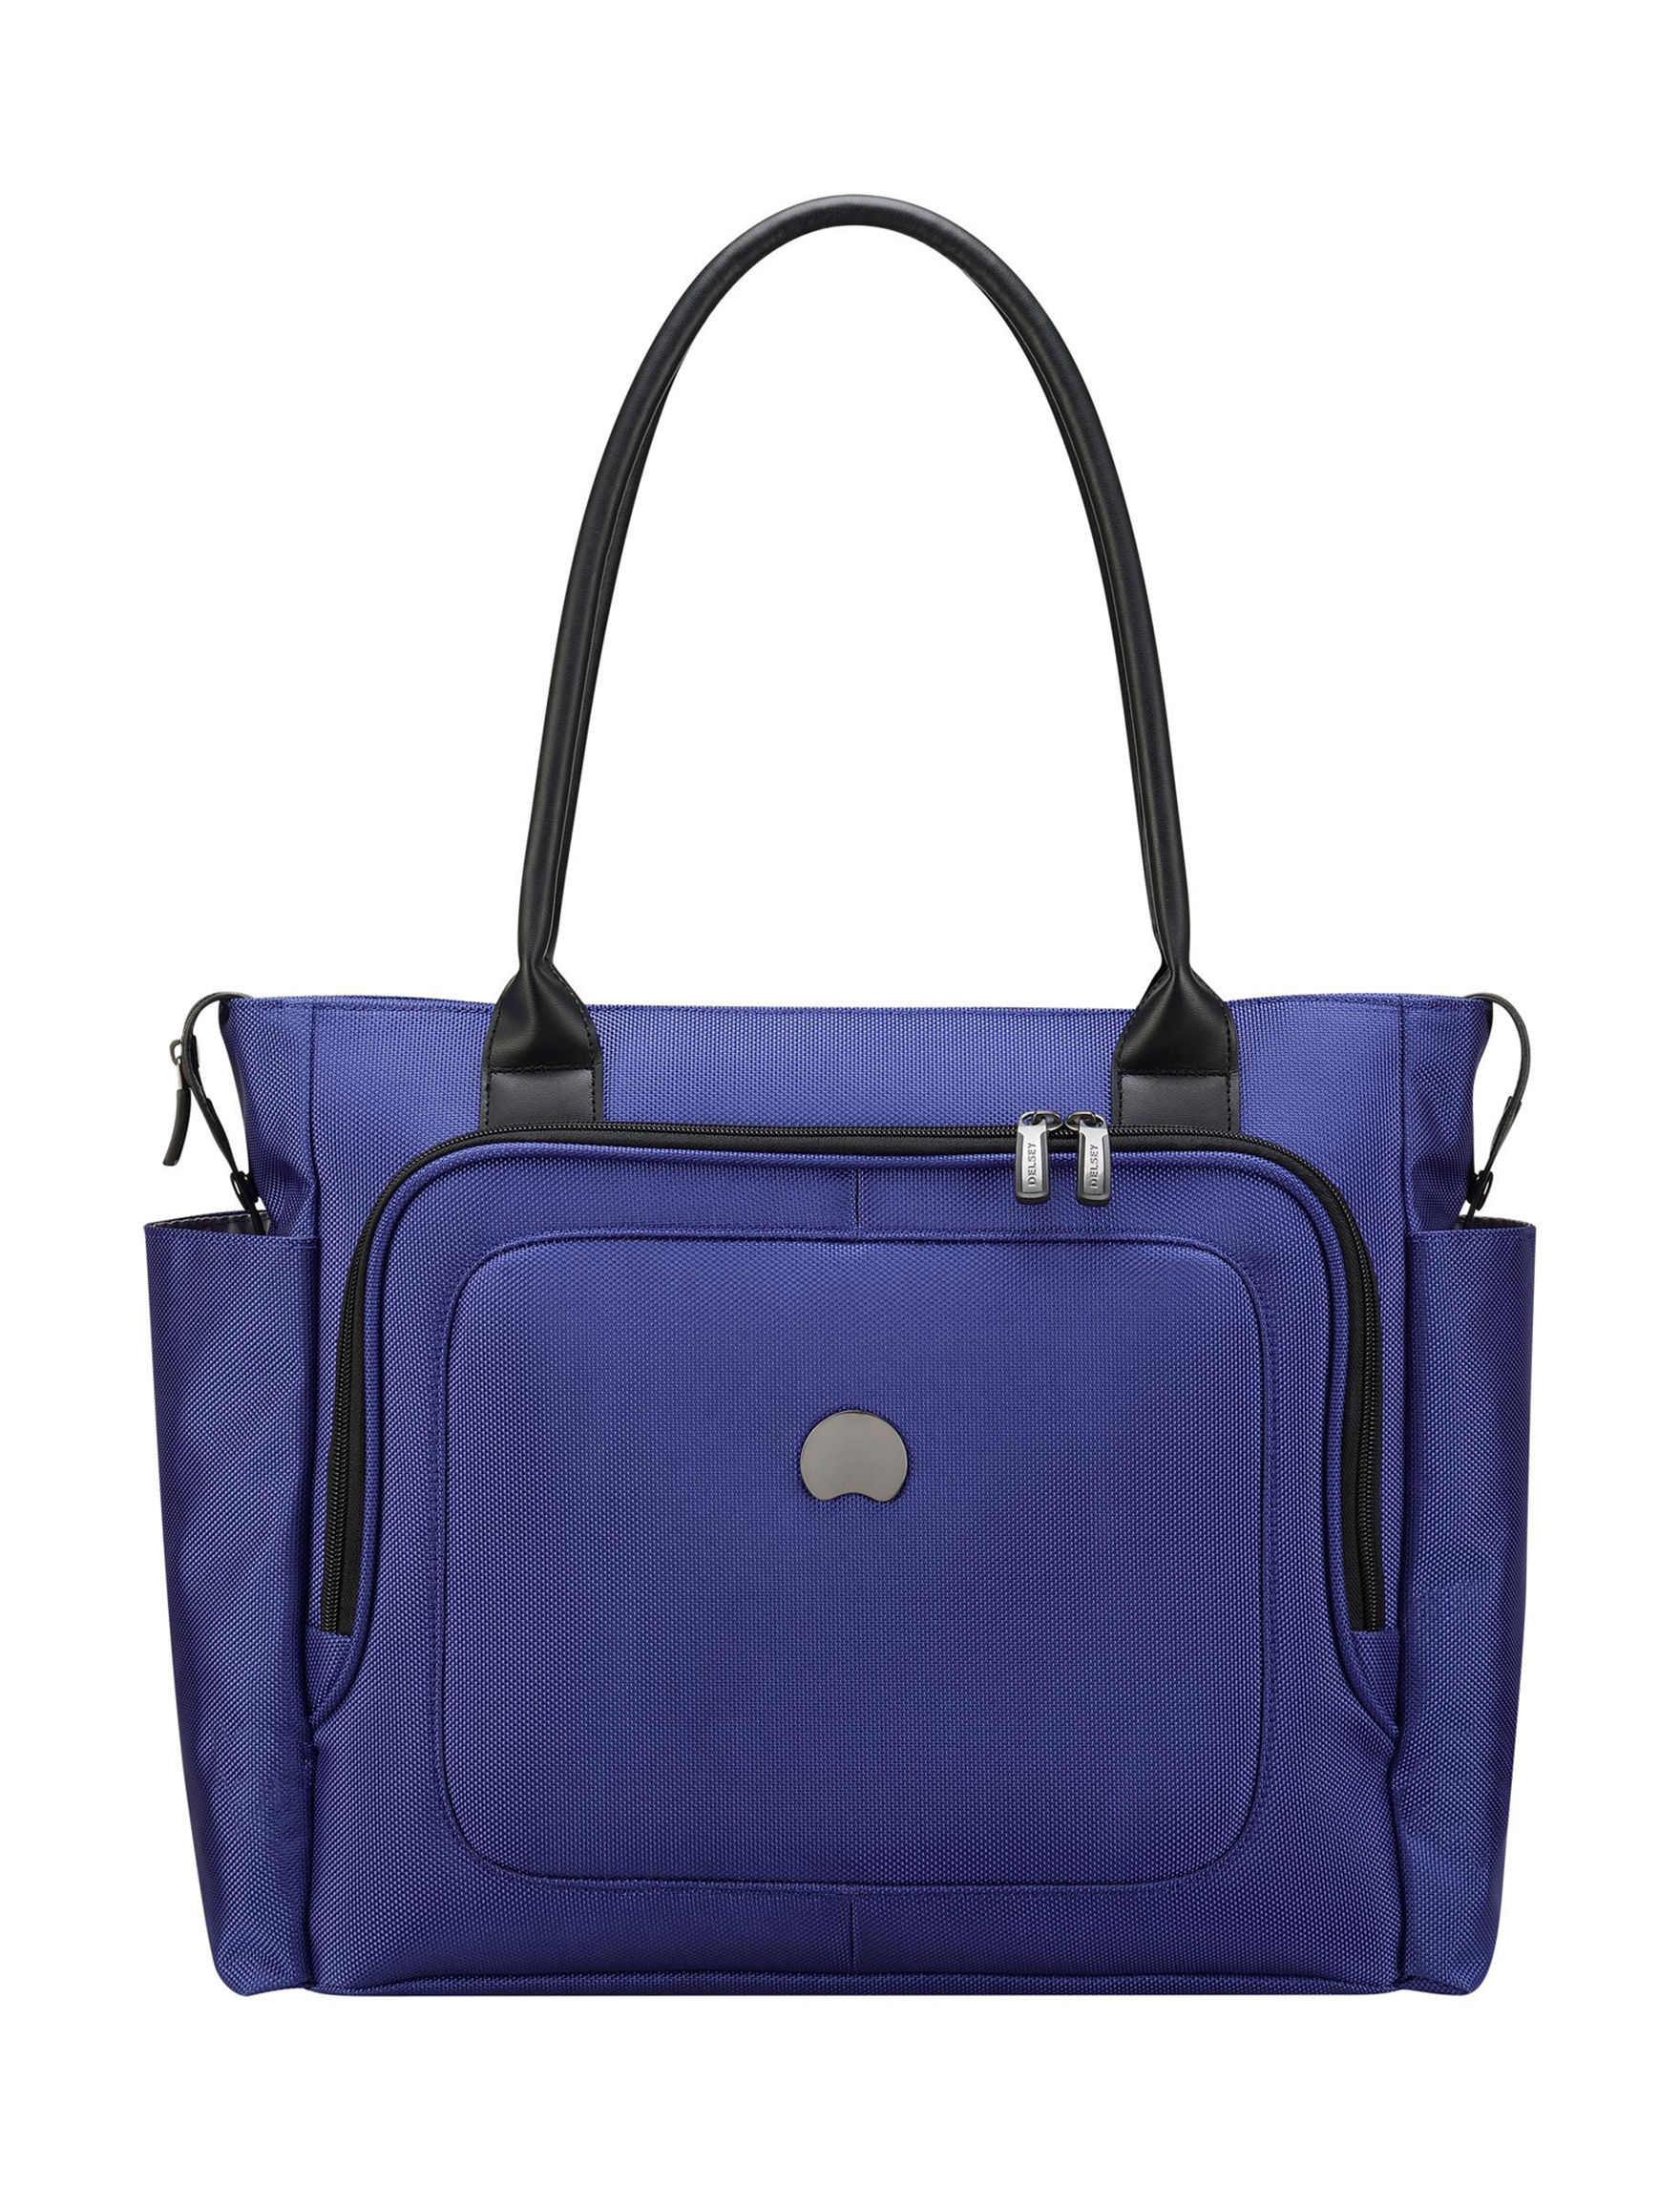 Delsey Blue Travel Totes